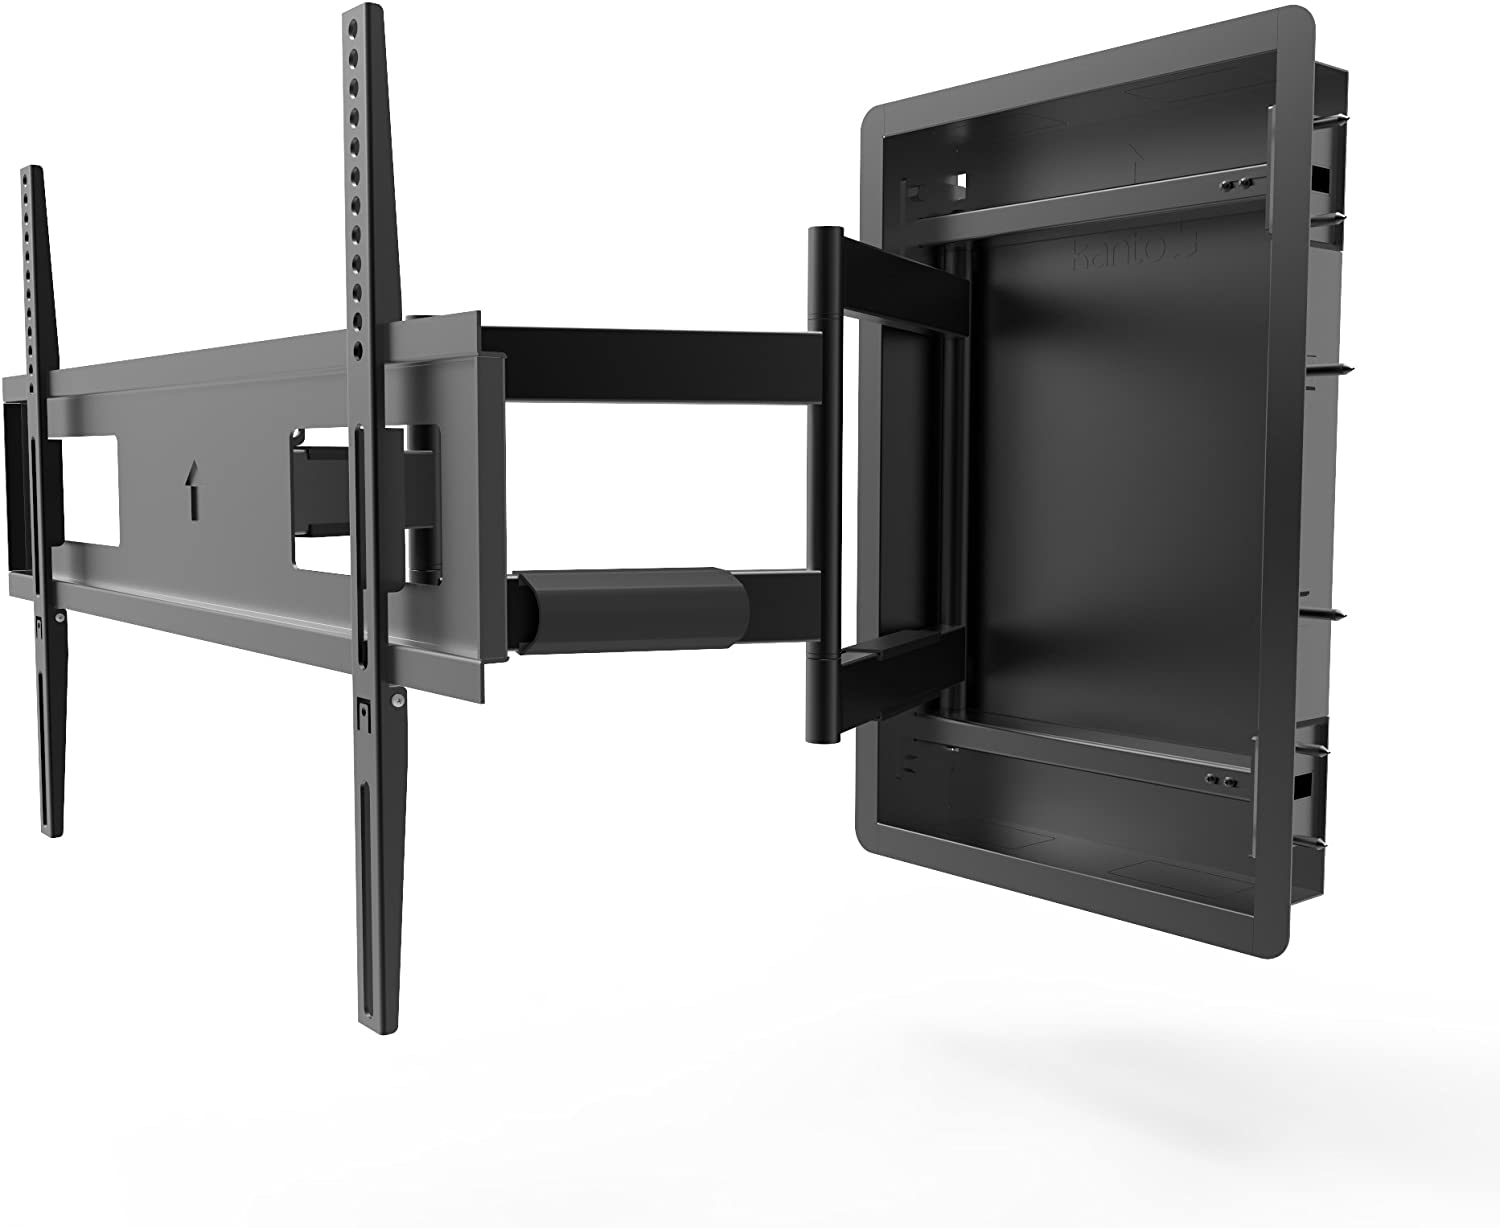 Kanto Recessed in-Wall Full Motion TV Mount for 46-inch to 80-inch TVs